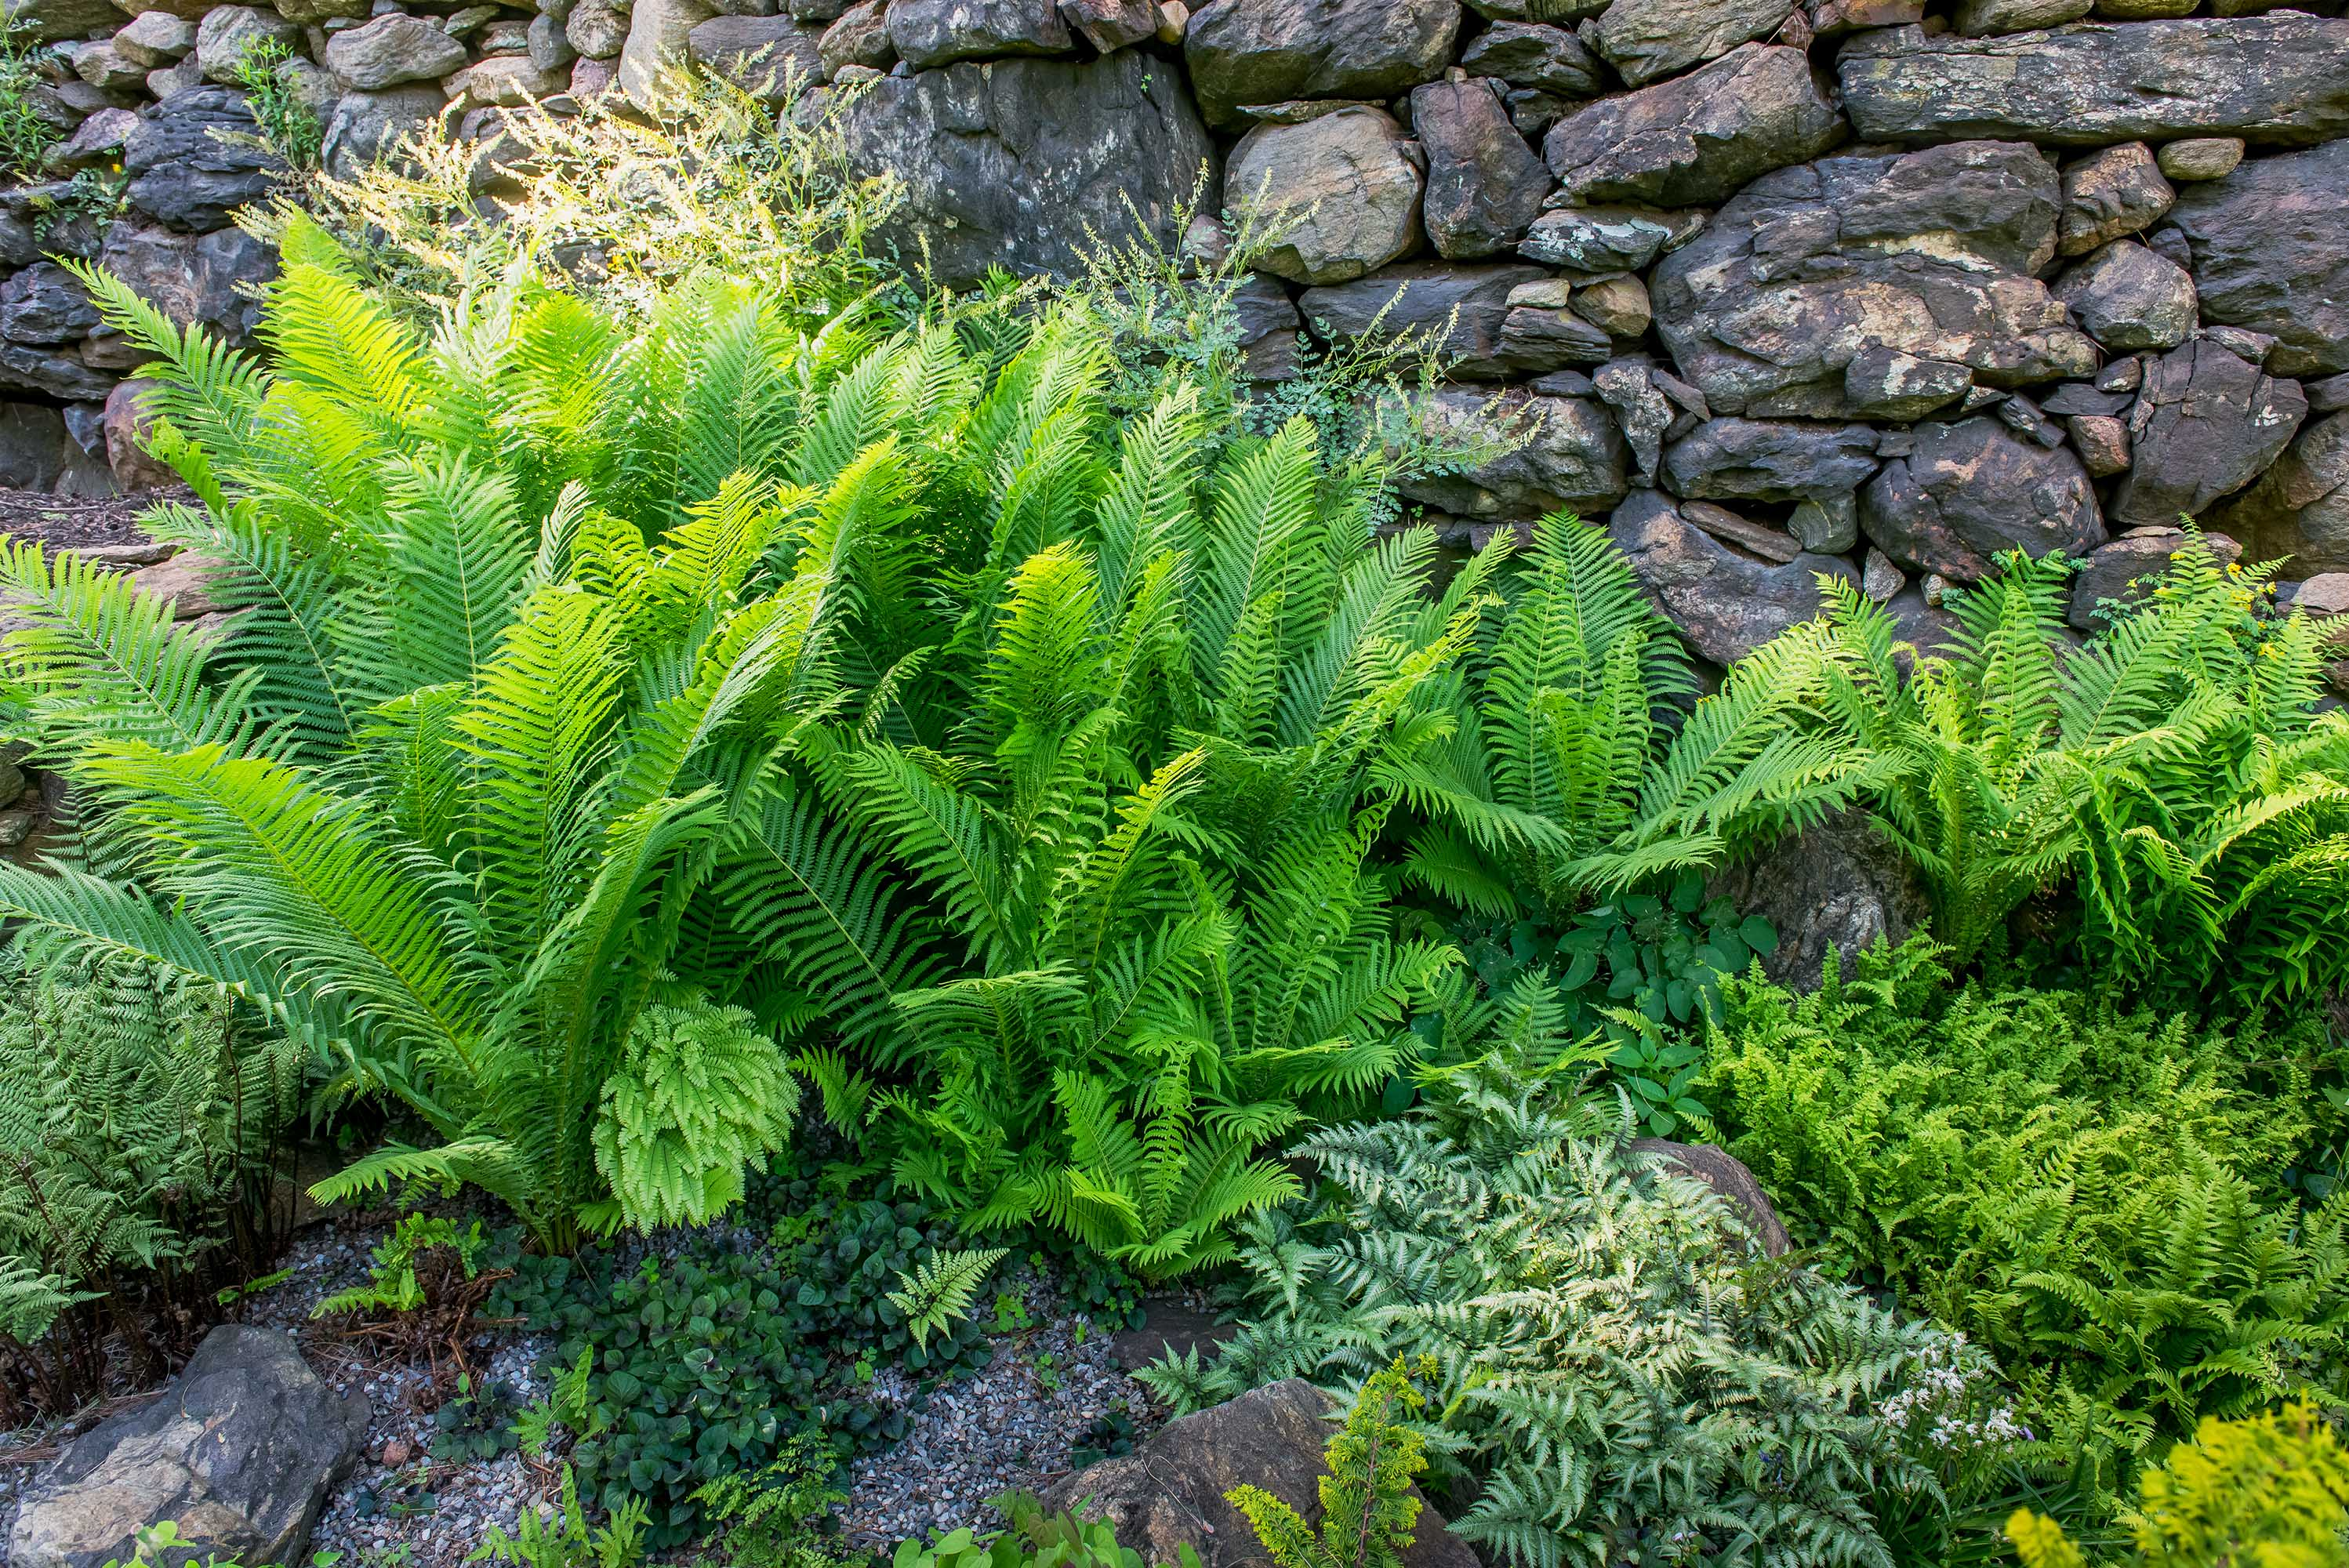 Ferns can thrive in a variety of environments, including squeezed between large boulders.